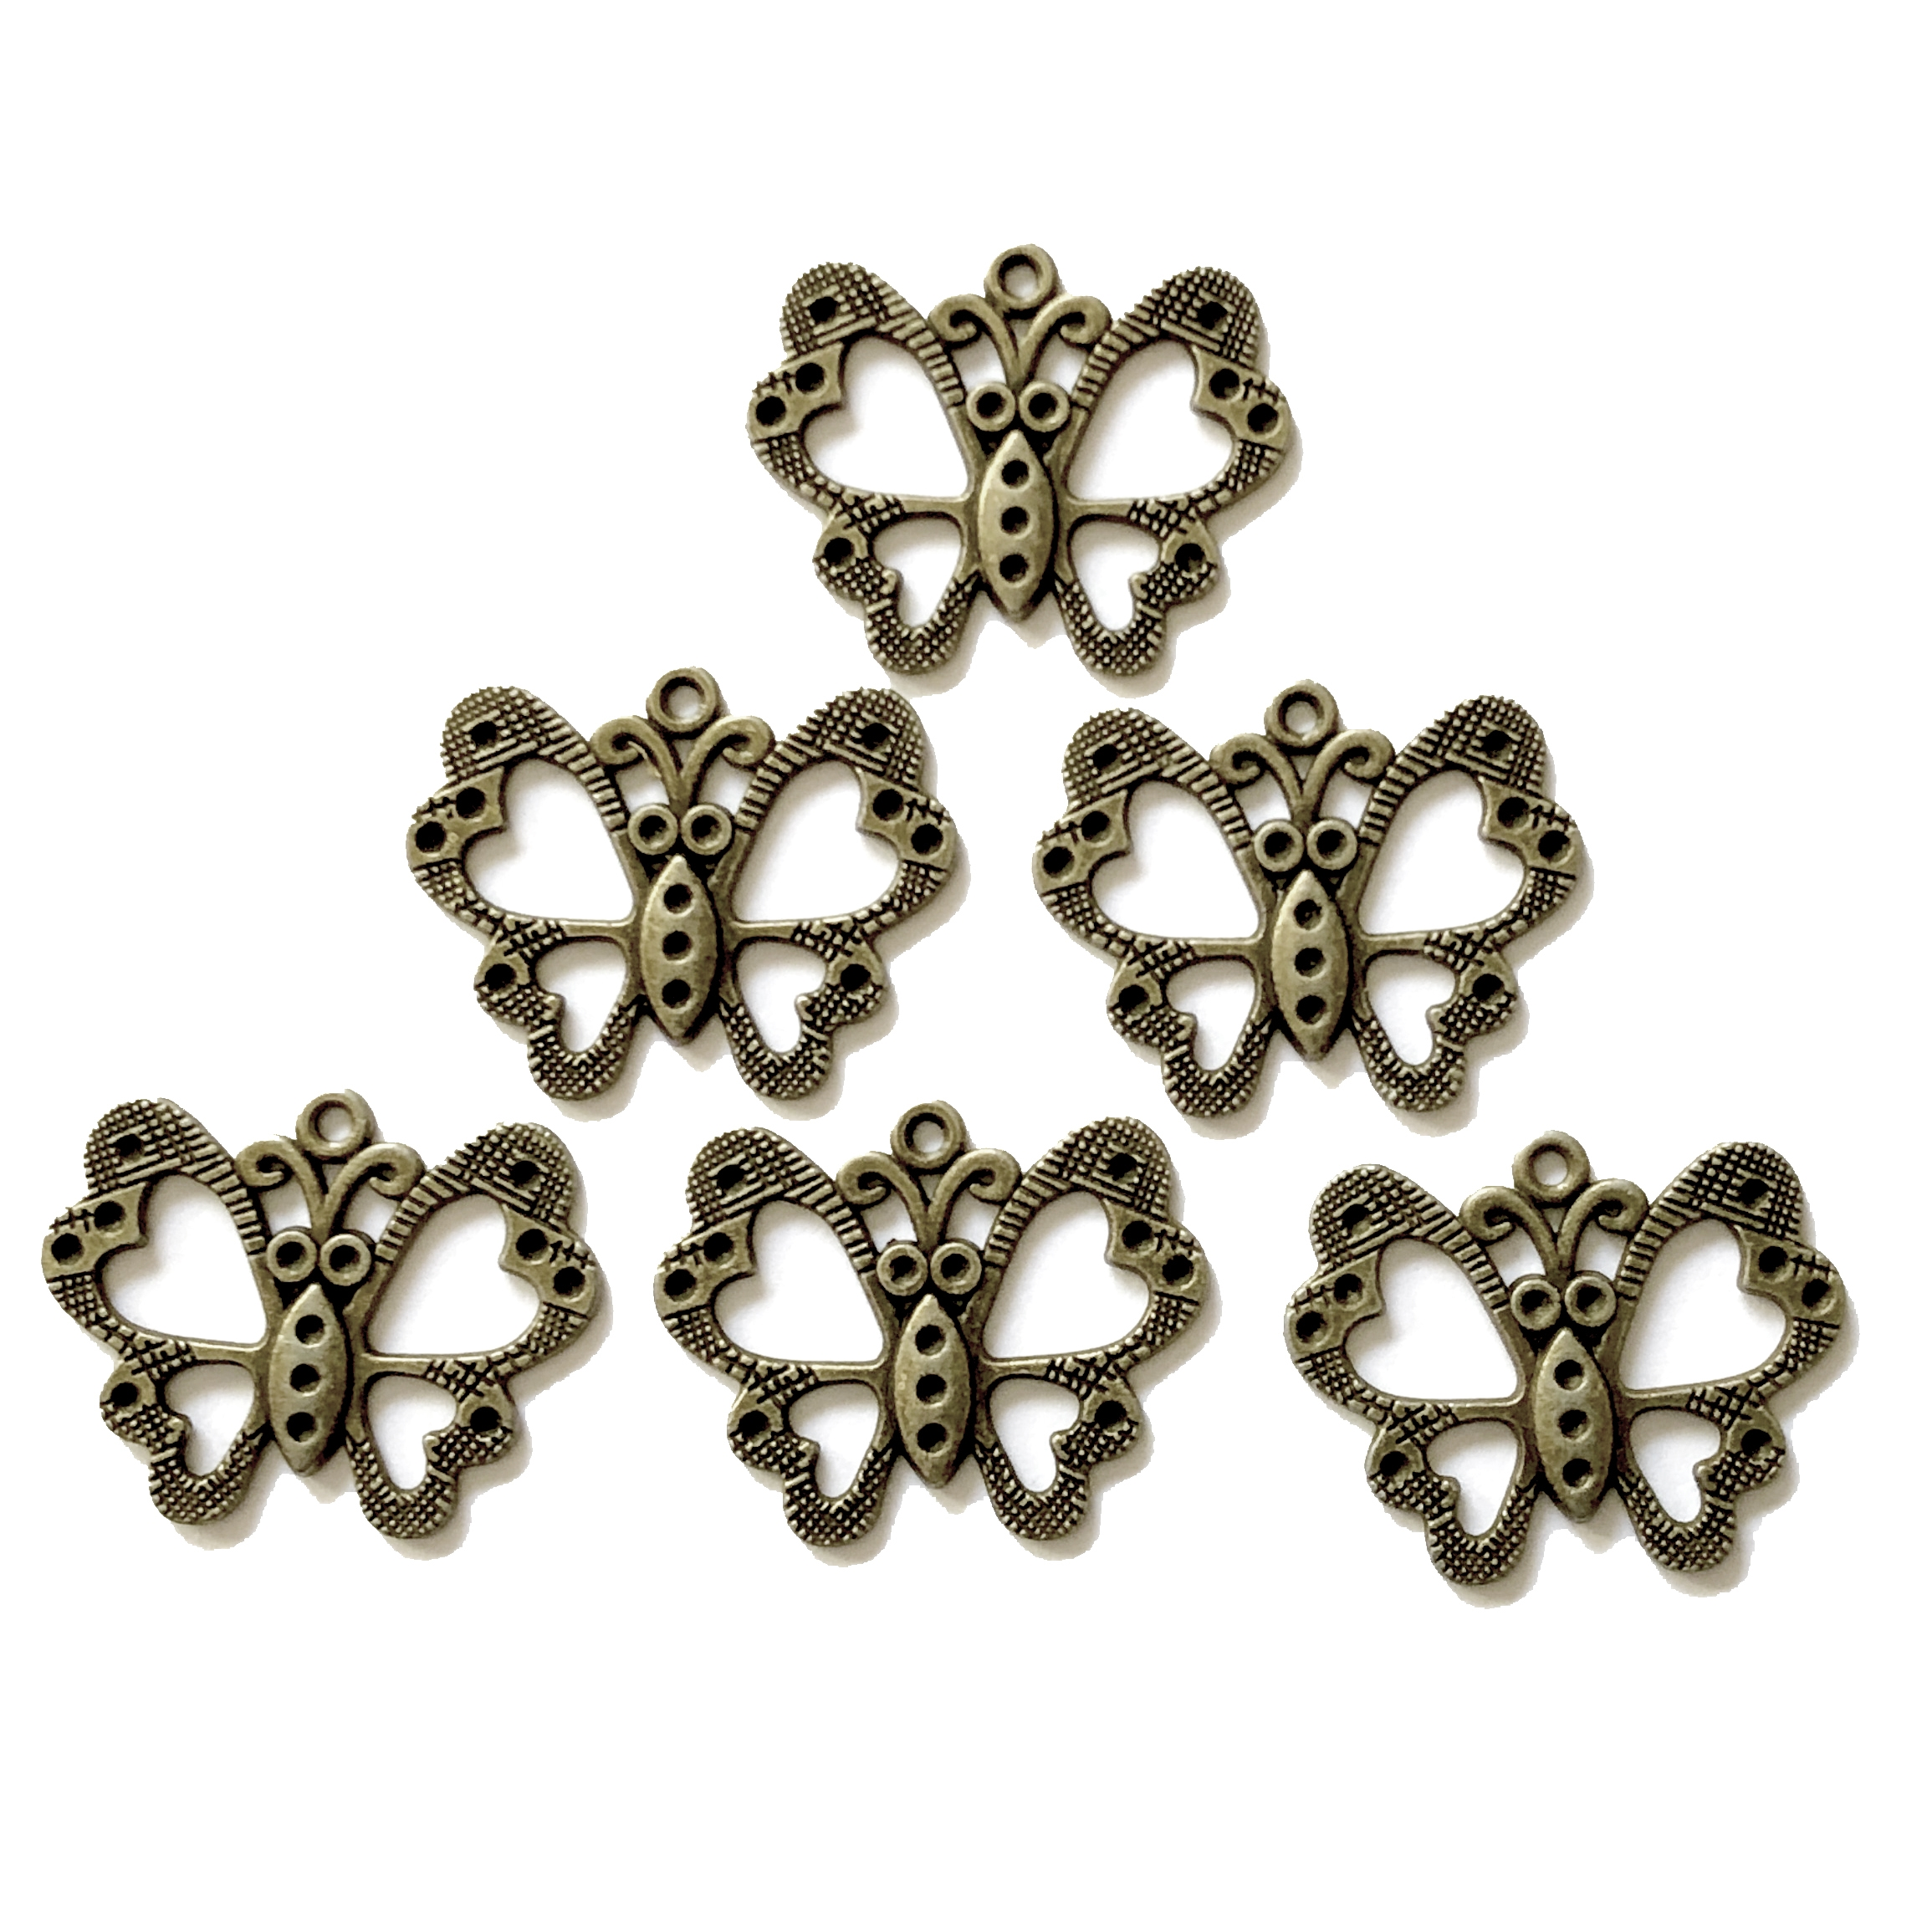 Butterfly pendants, Bronze finish, 09137, 25x31, zinc alloy, butterflies, butterfly charms, charms, stone sets, stone settings, butterfly, rhinestone settings, jewelry supplies, jewelry making, B'sue Boutiques, bugs, insects, animals